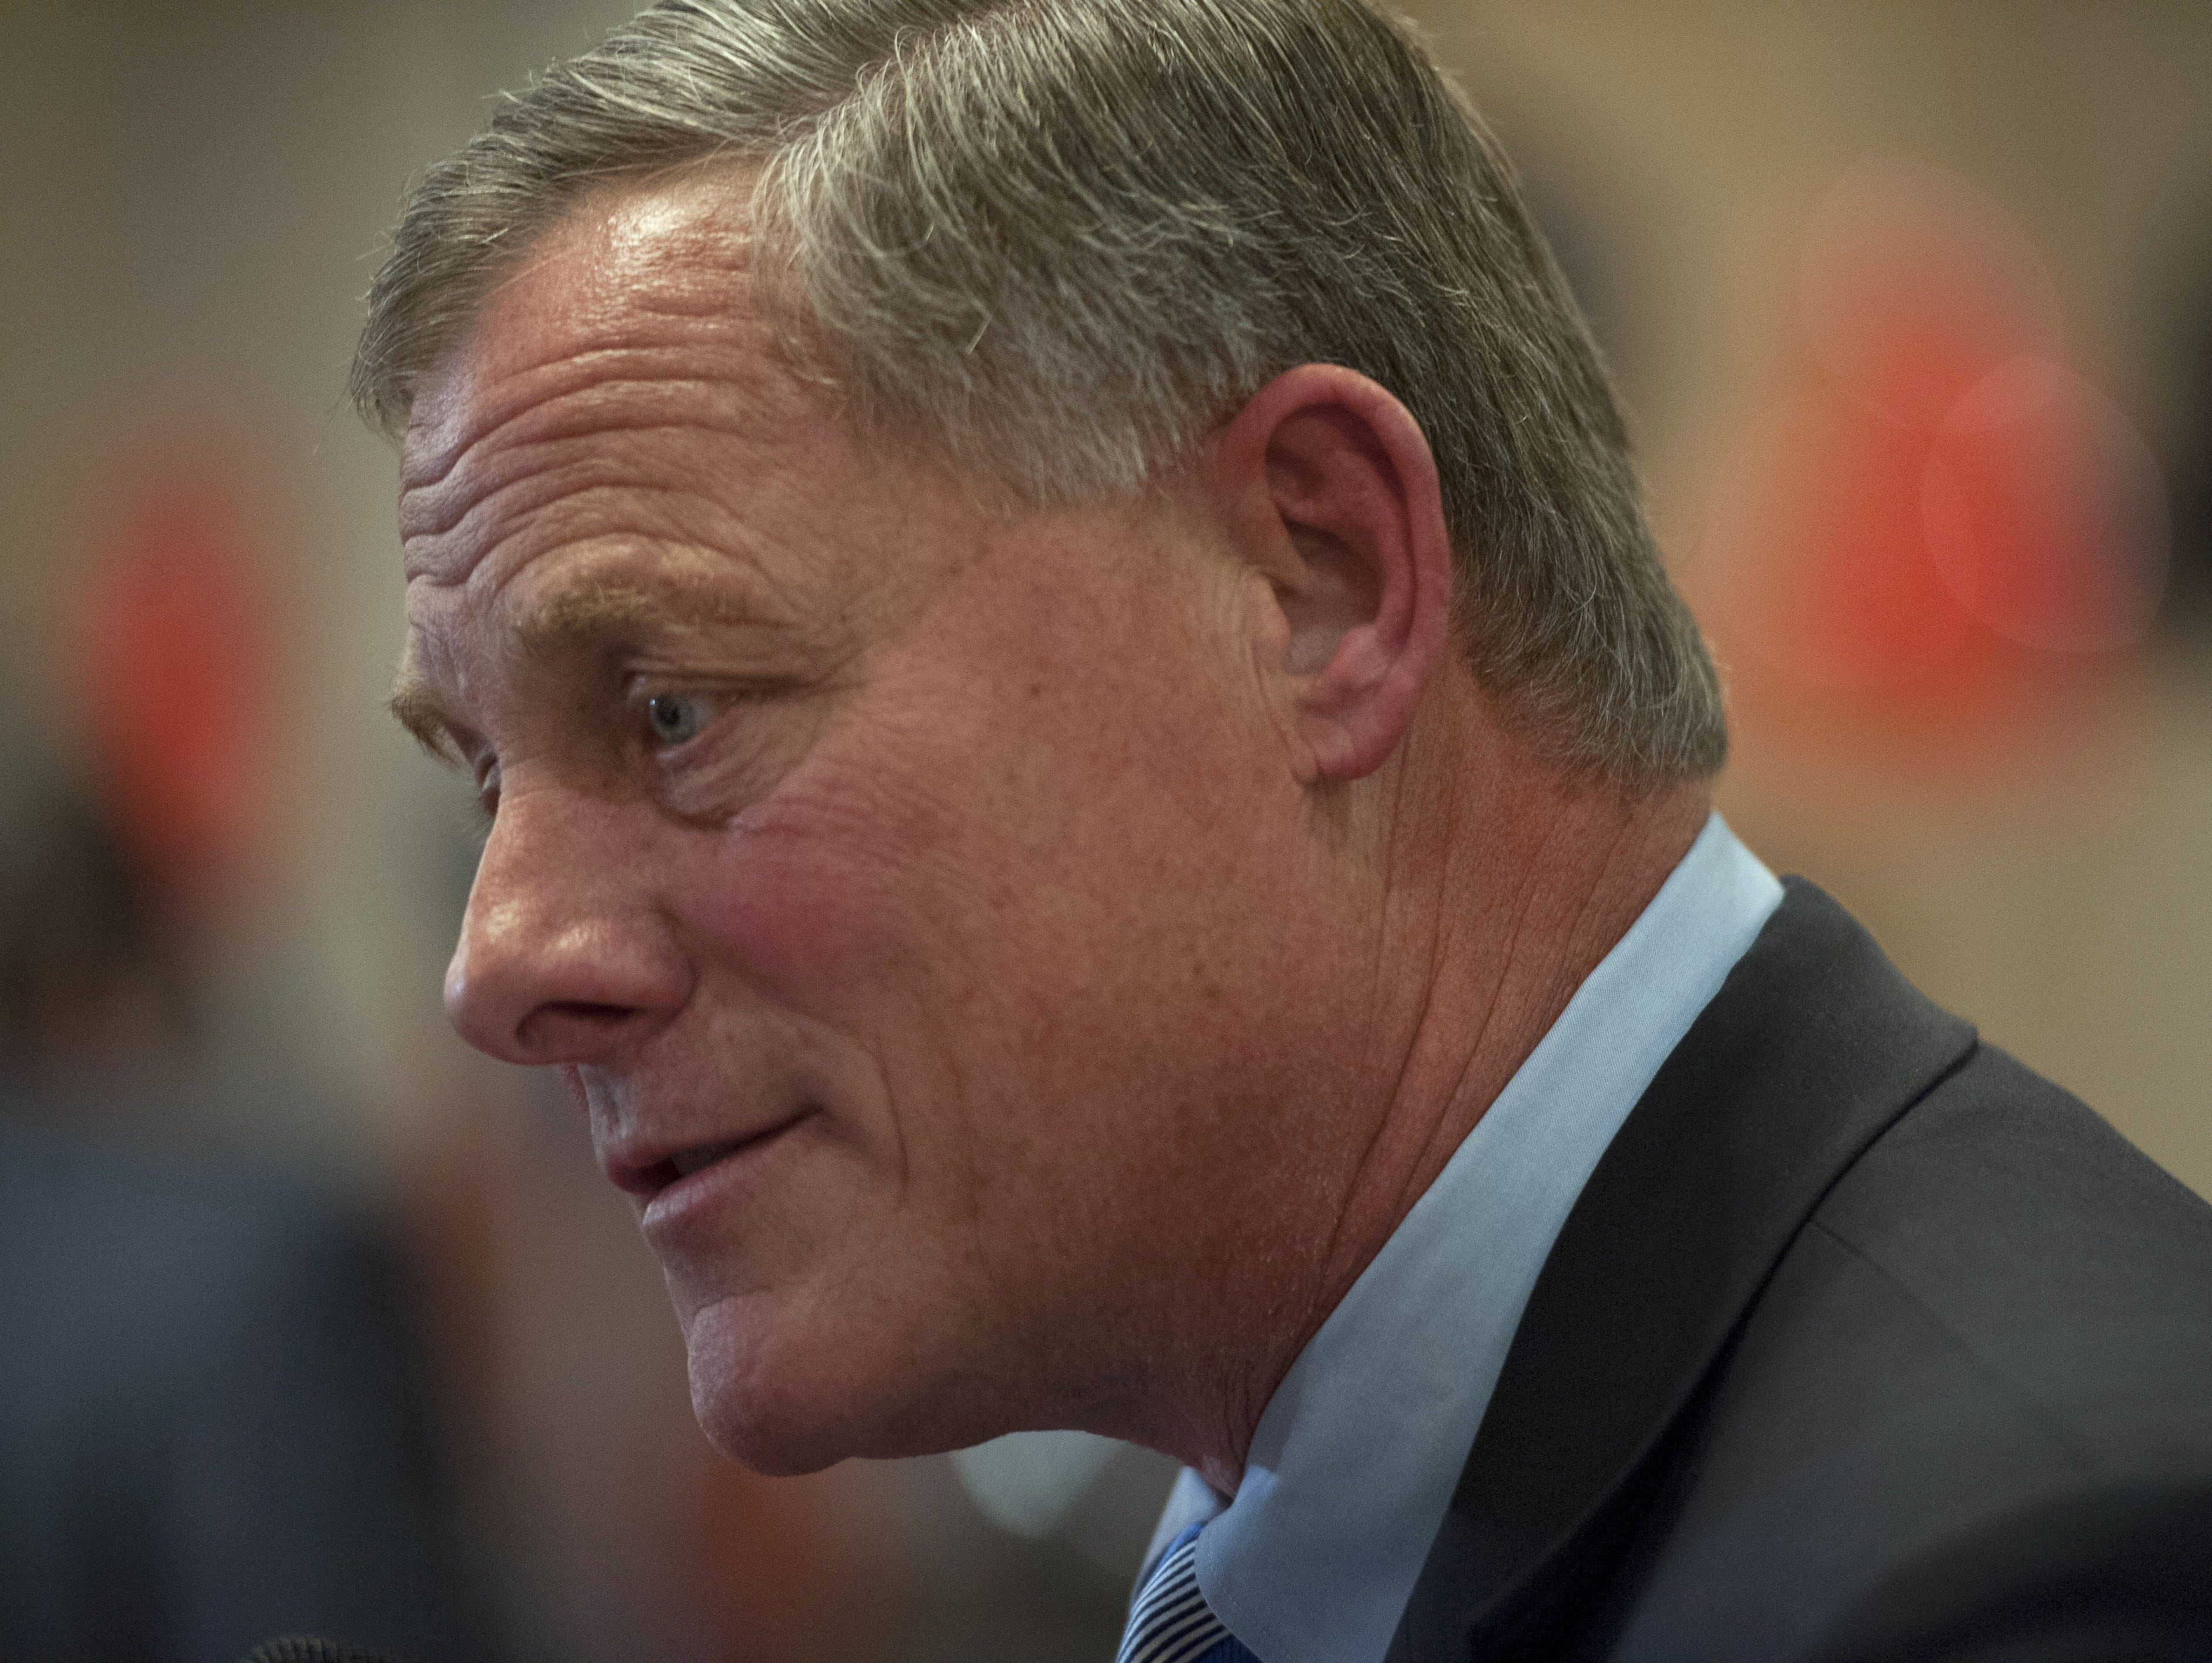 Sen. Richard Burr, R-N.C., is chairman of the Senate intelligence committee and a lead sponsor of the Cybersecurity Information Sharing Act.